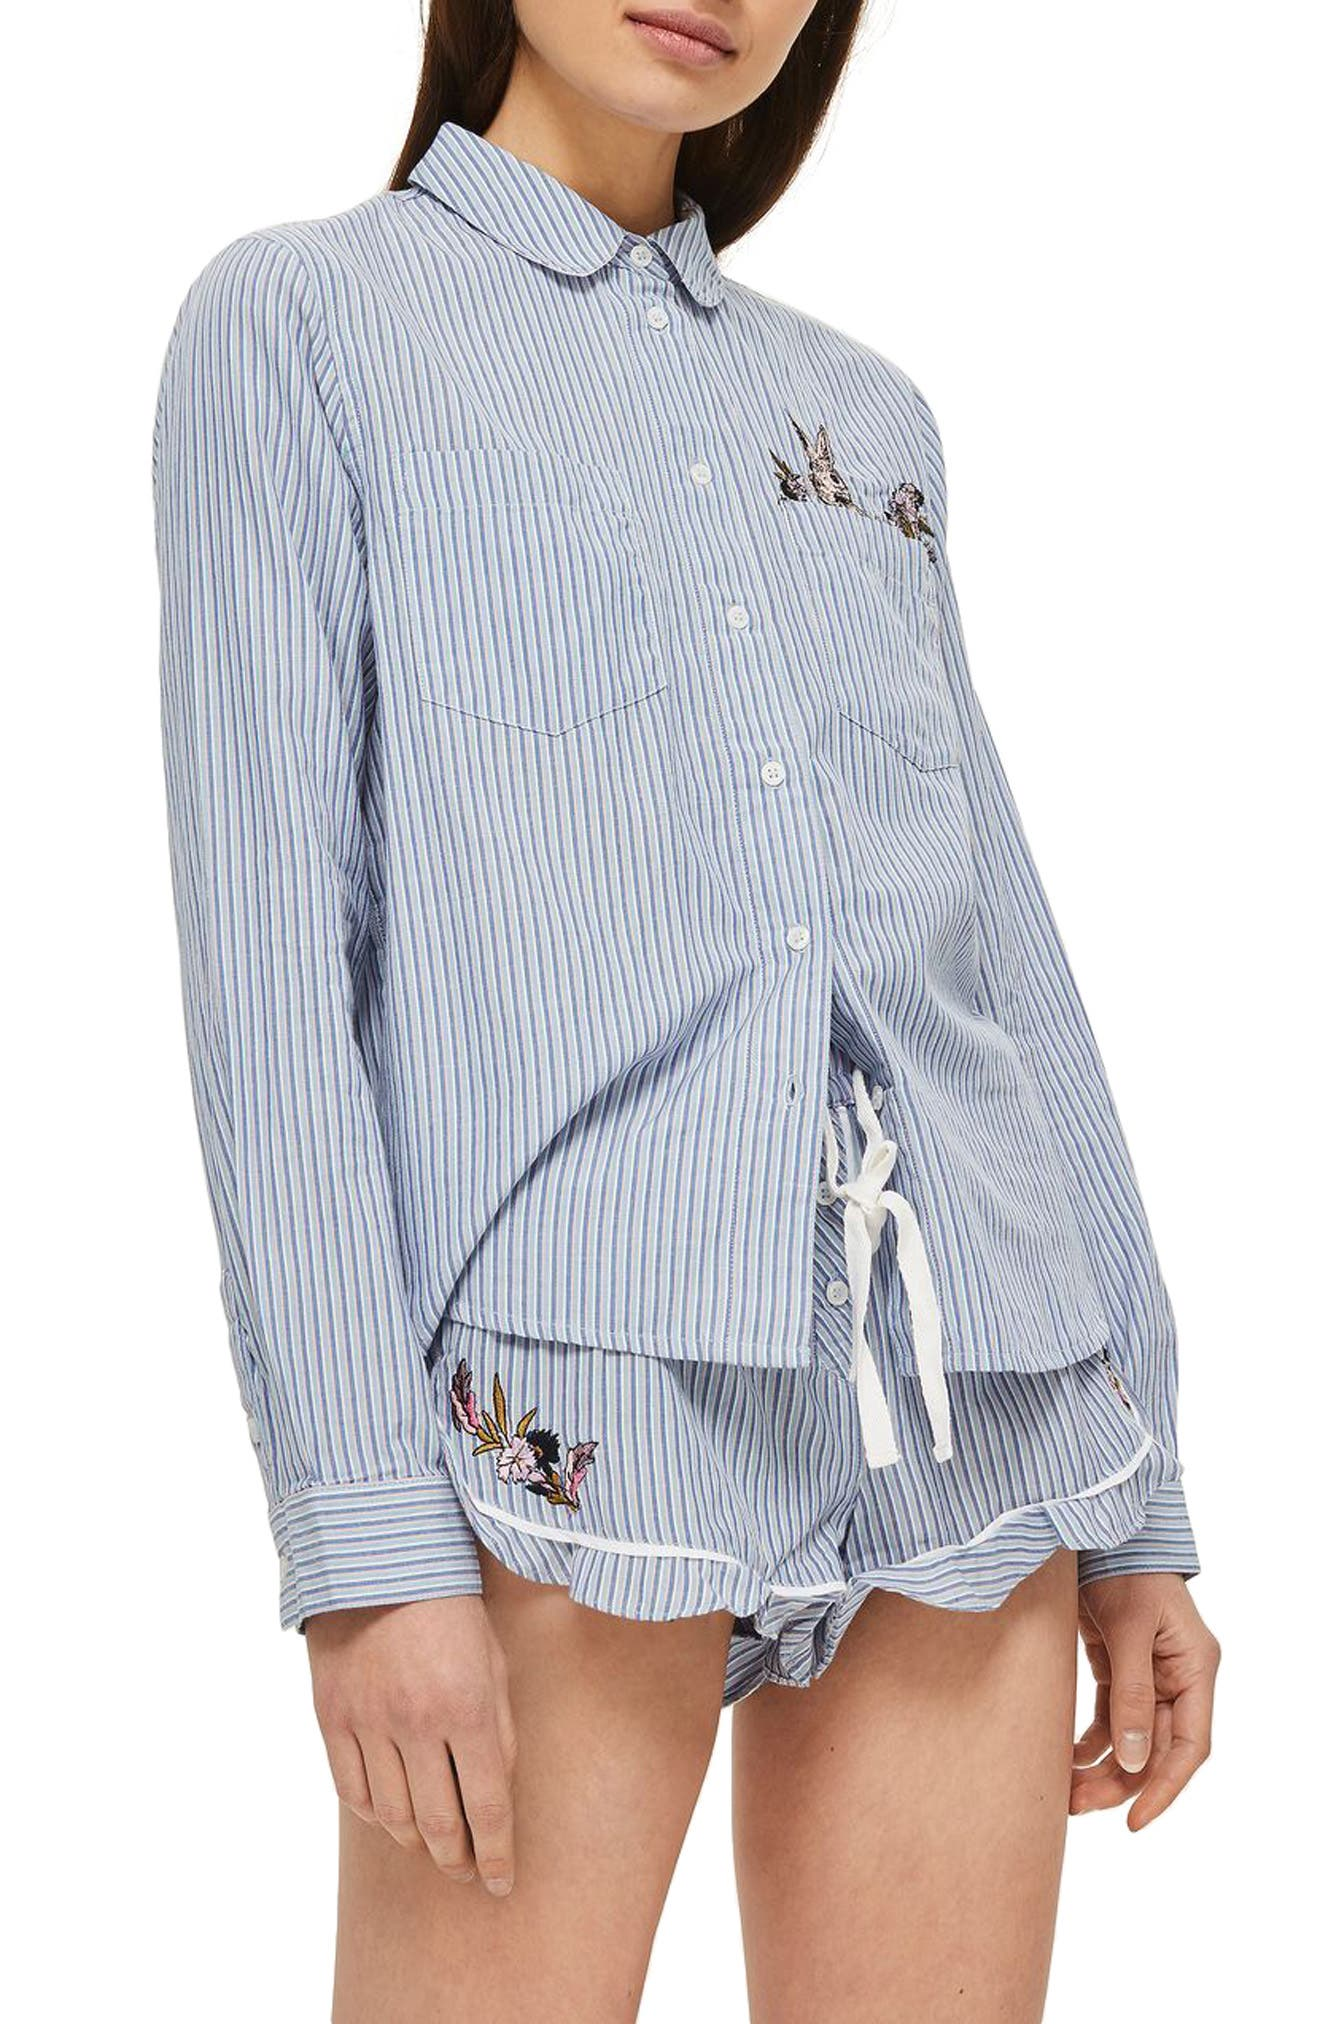 Bunny Embroidered Short Pajamas,                         Main,                         color, 650